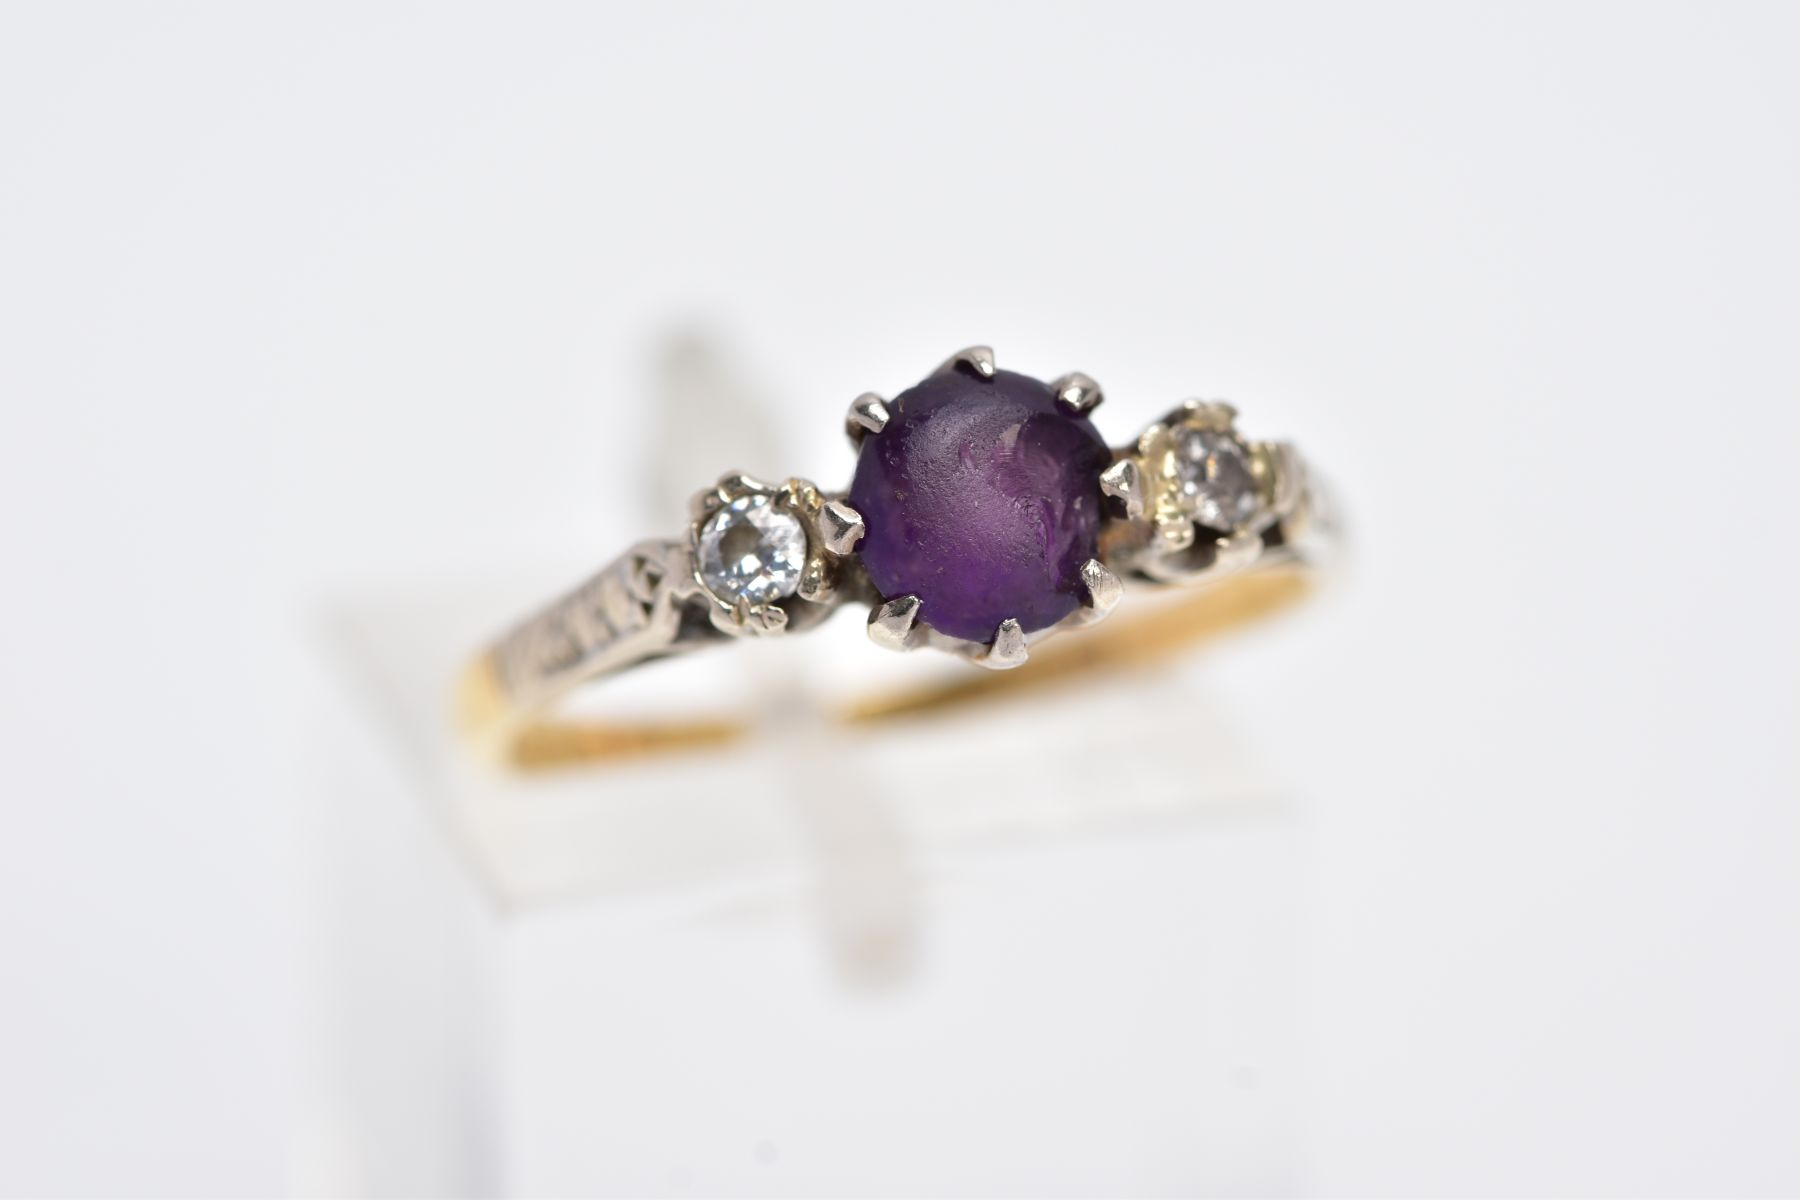 A YELLOW METAL THREE STONE RING, design with a central circular cut purple stone, assessed as paste, - Image 4 of 4